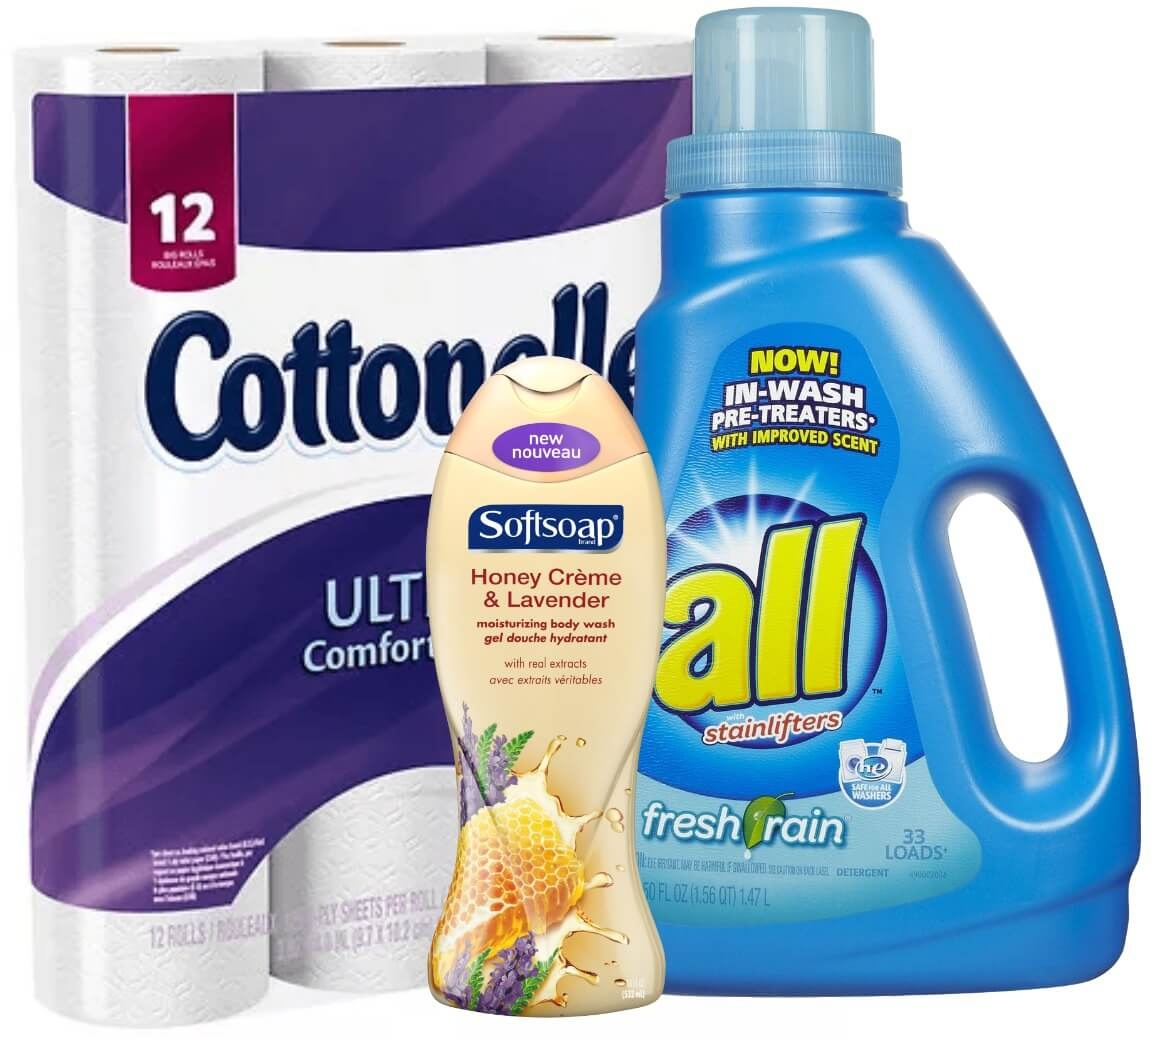 Today's Top New Coupons - Save On Cottonelle, Softsoap, All - Free All Detergent Printable Coupons